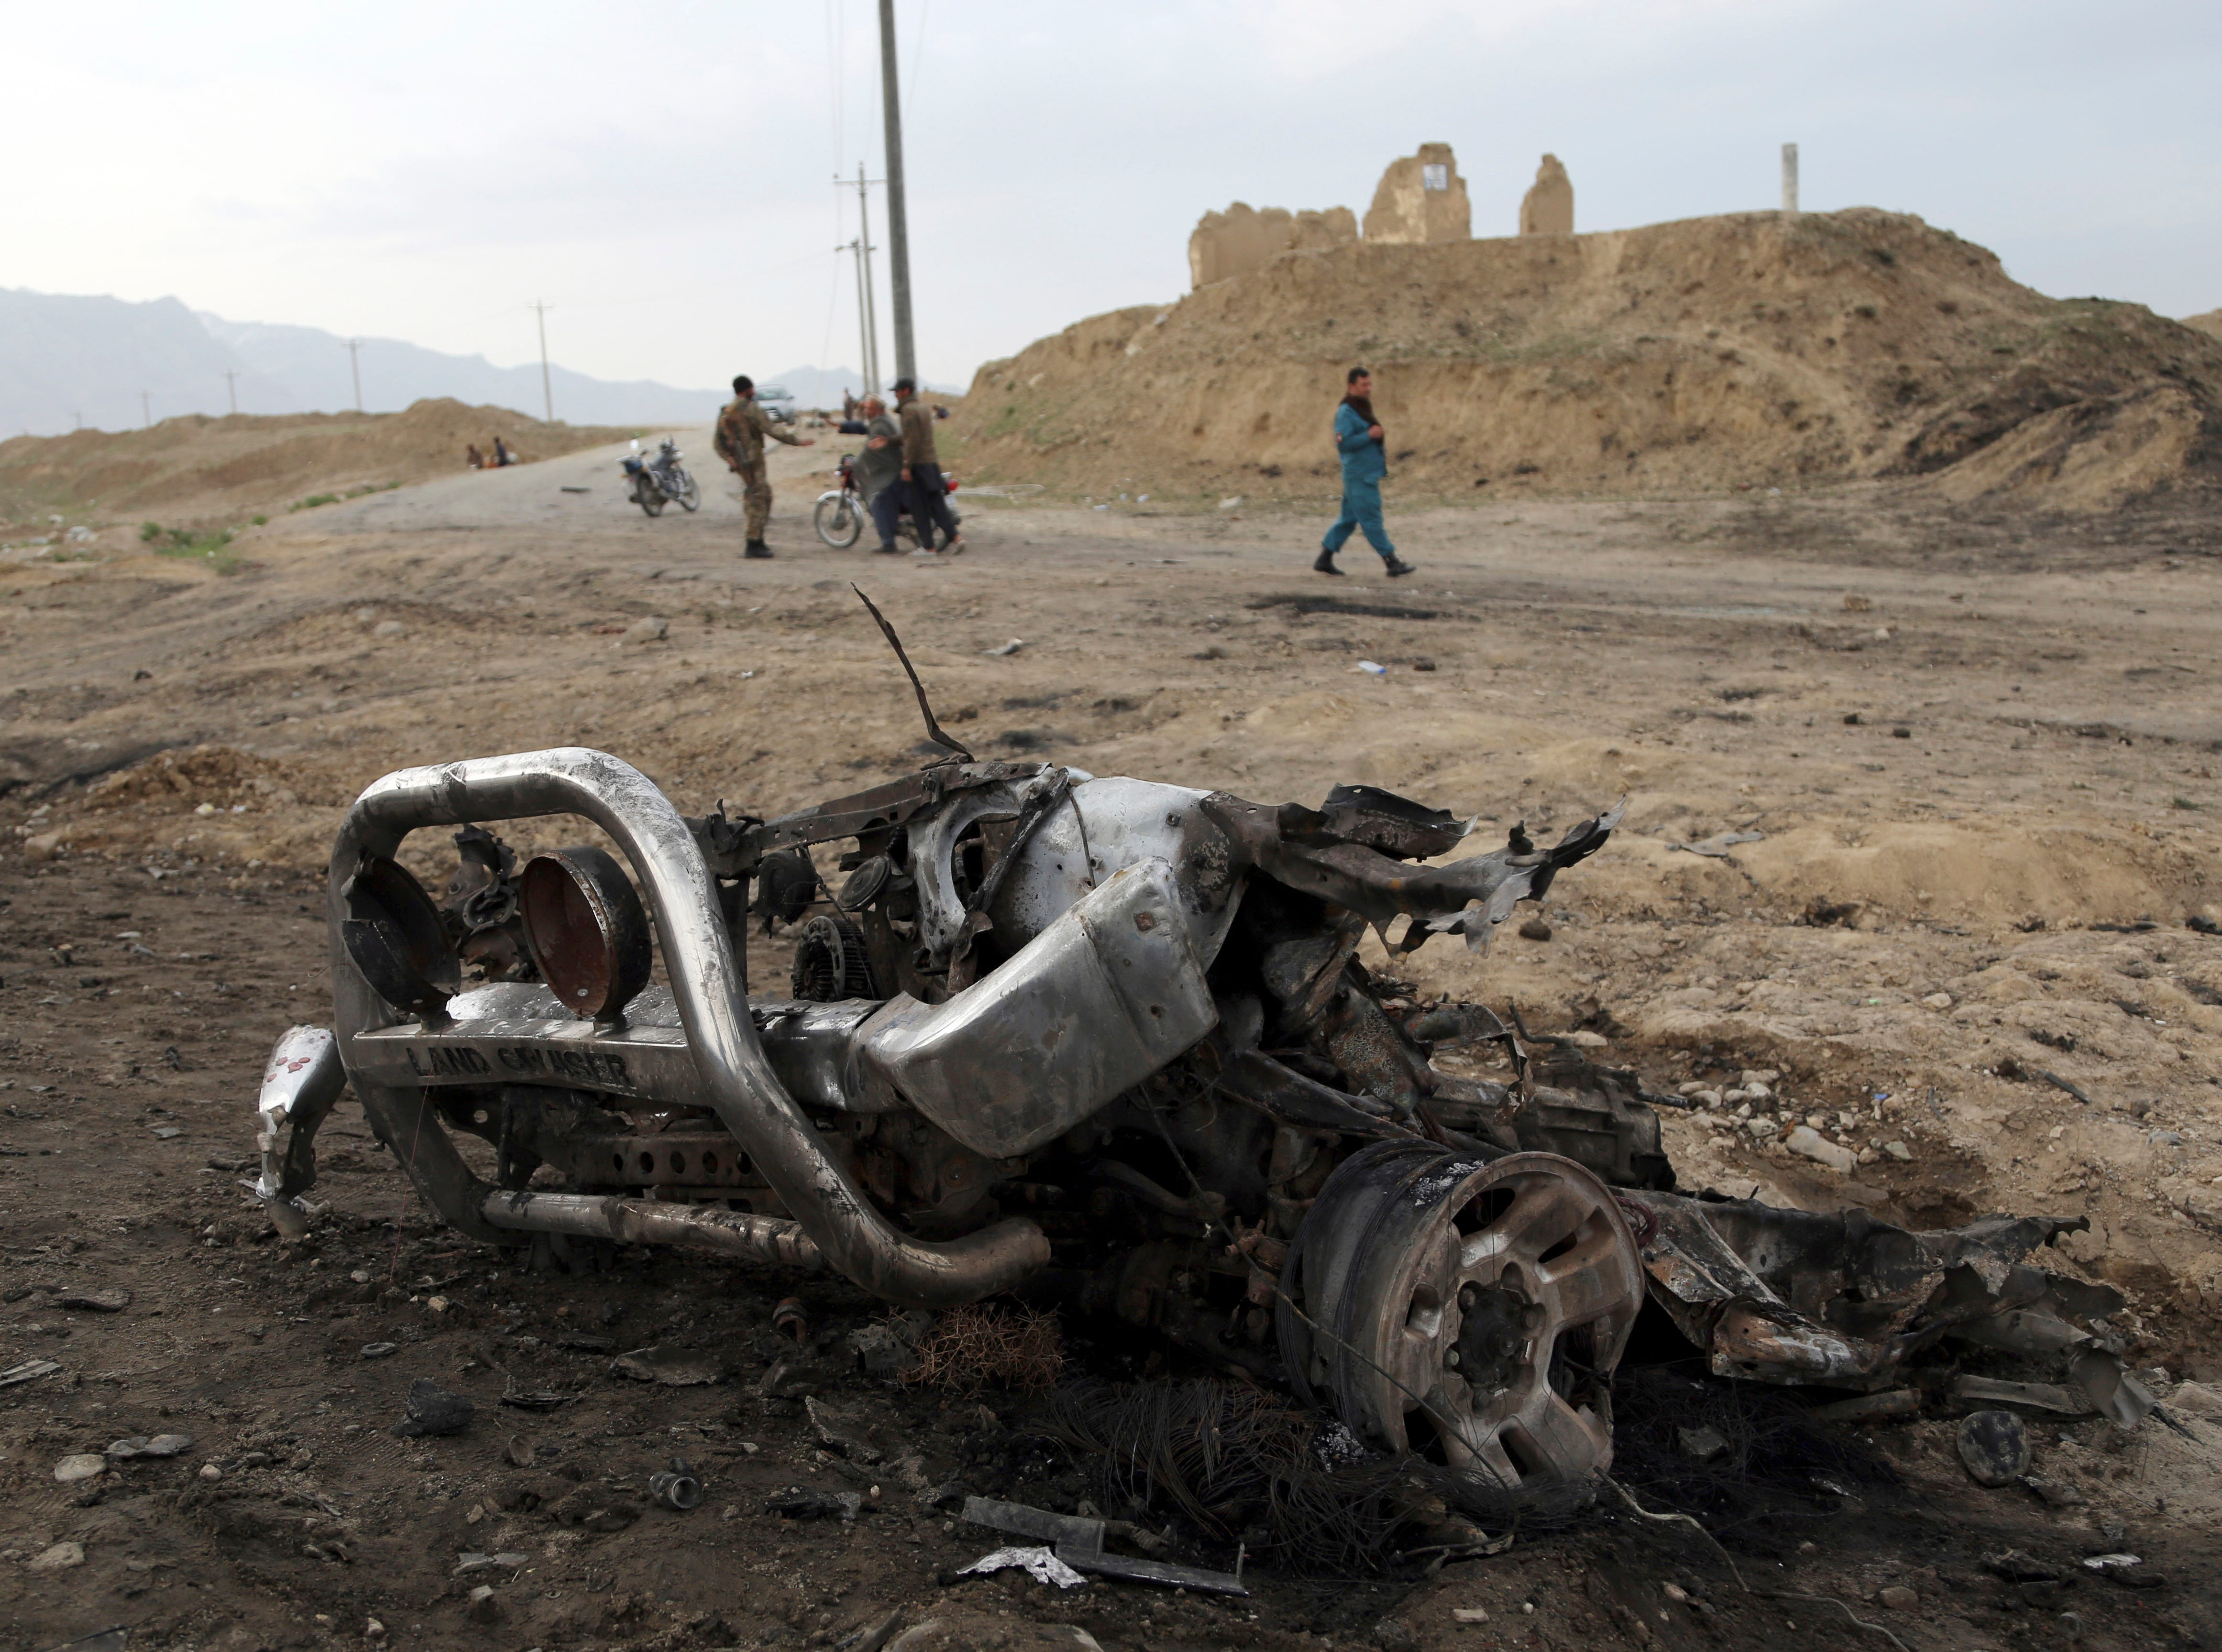 Afghan security forces gather at the site of Monday's suicide attack near the Bagram Air Base, north of Kabul, Afghanistan, Tuesday, April 9, 2019. Three American service members were killed when their convoy hit a roadside bomb on Monday near the main U.S. base in Afghanistan, the U.S. forces said. The Taliban claimed responsibility for the attack.